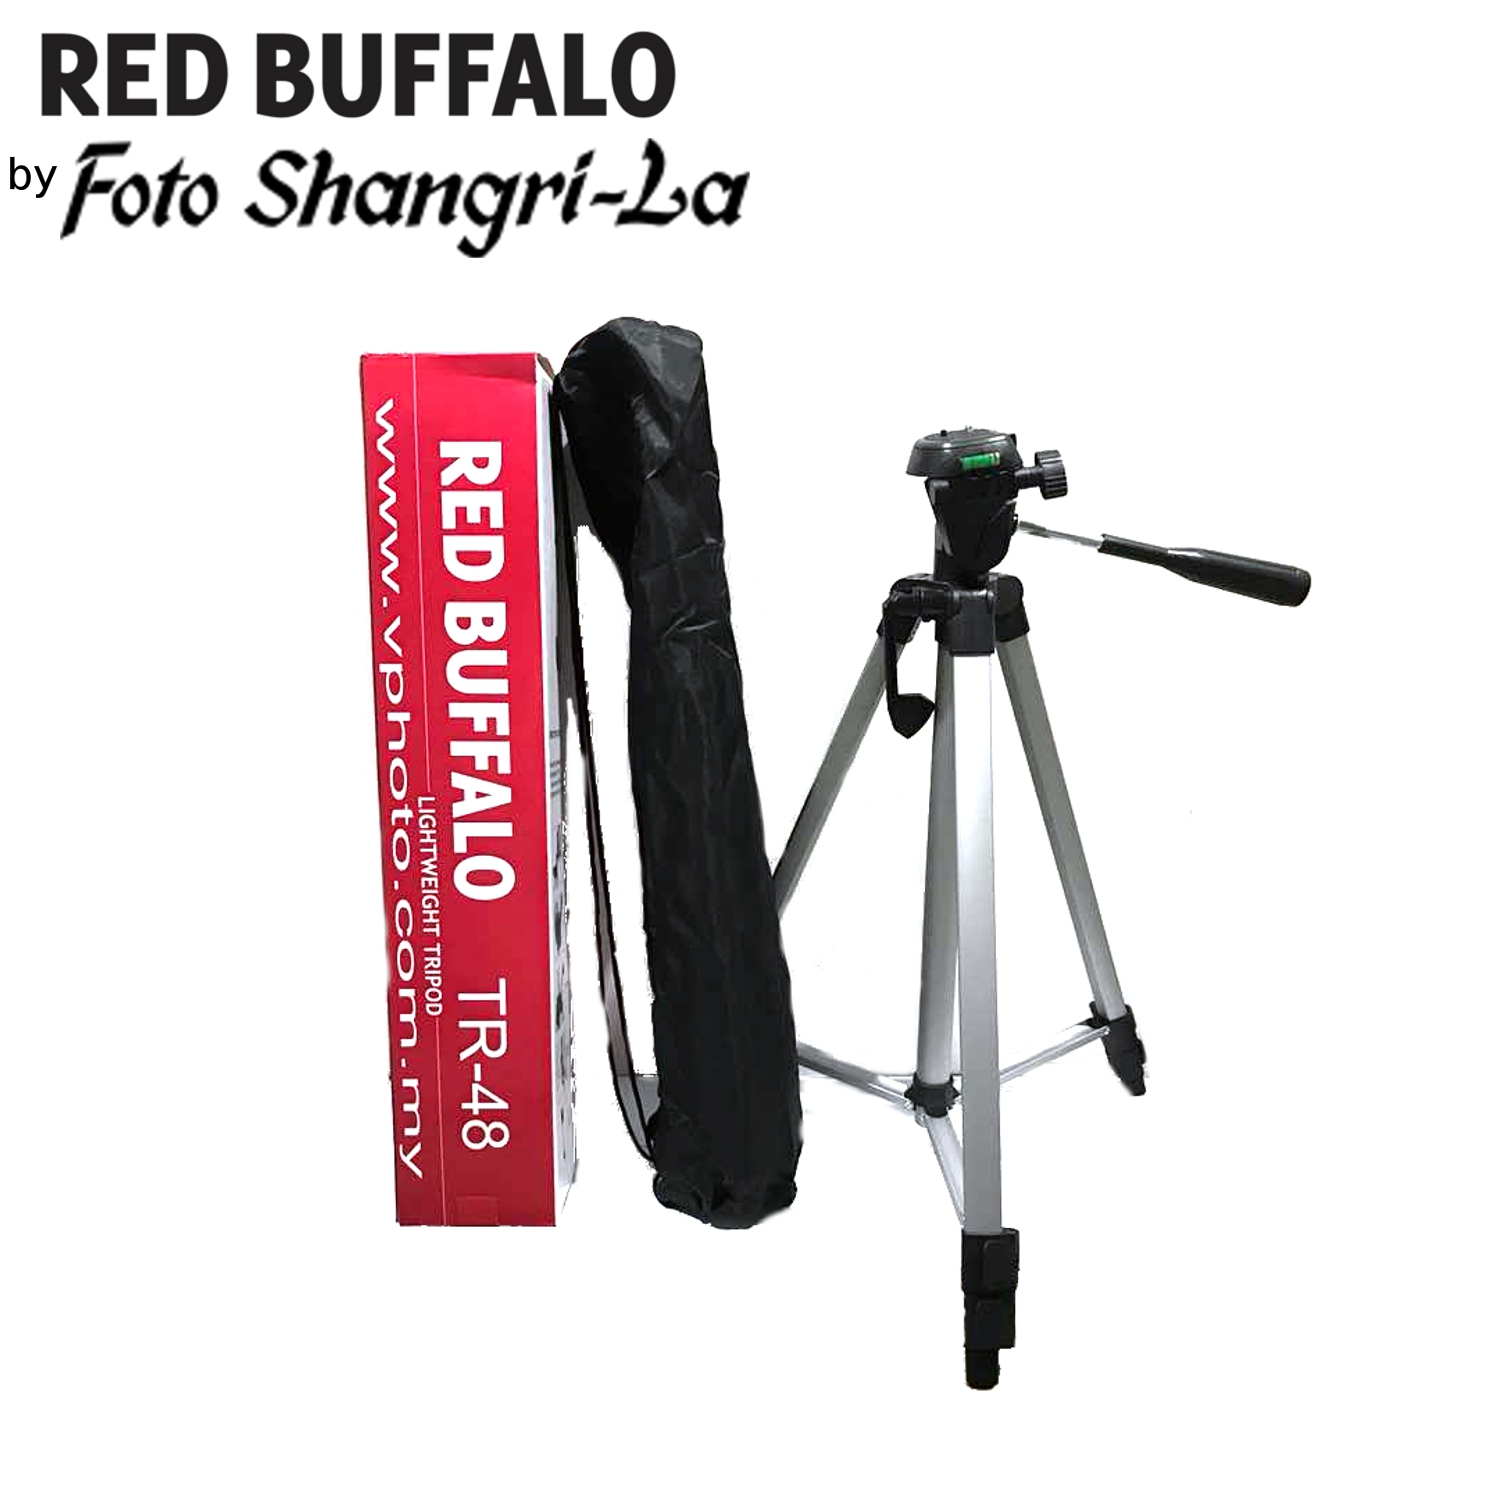 Buffalo TR-48 Camera Tripod 3-way head, 3 section closed channel leg d